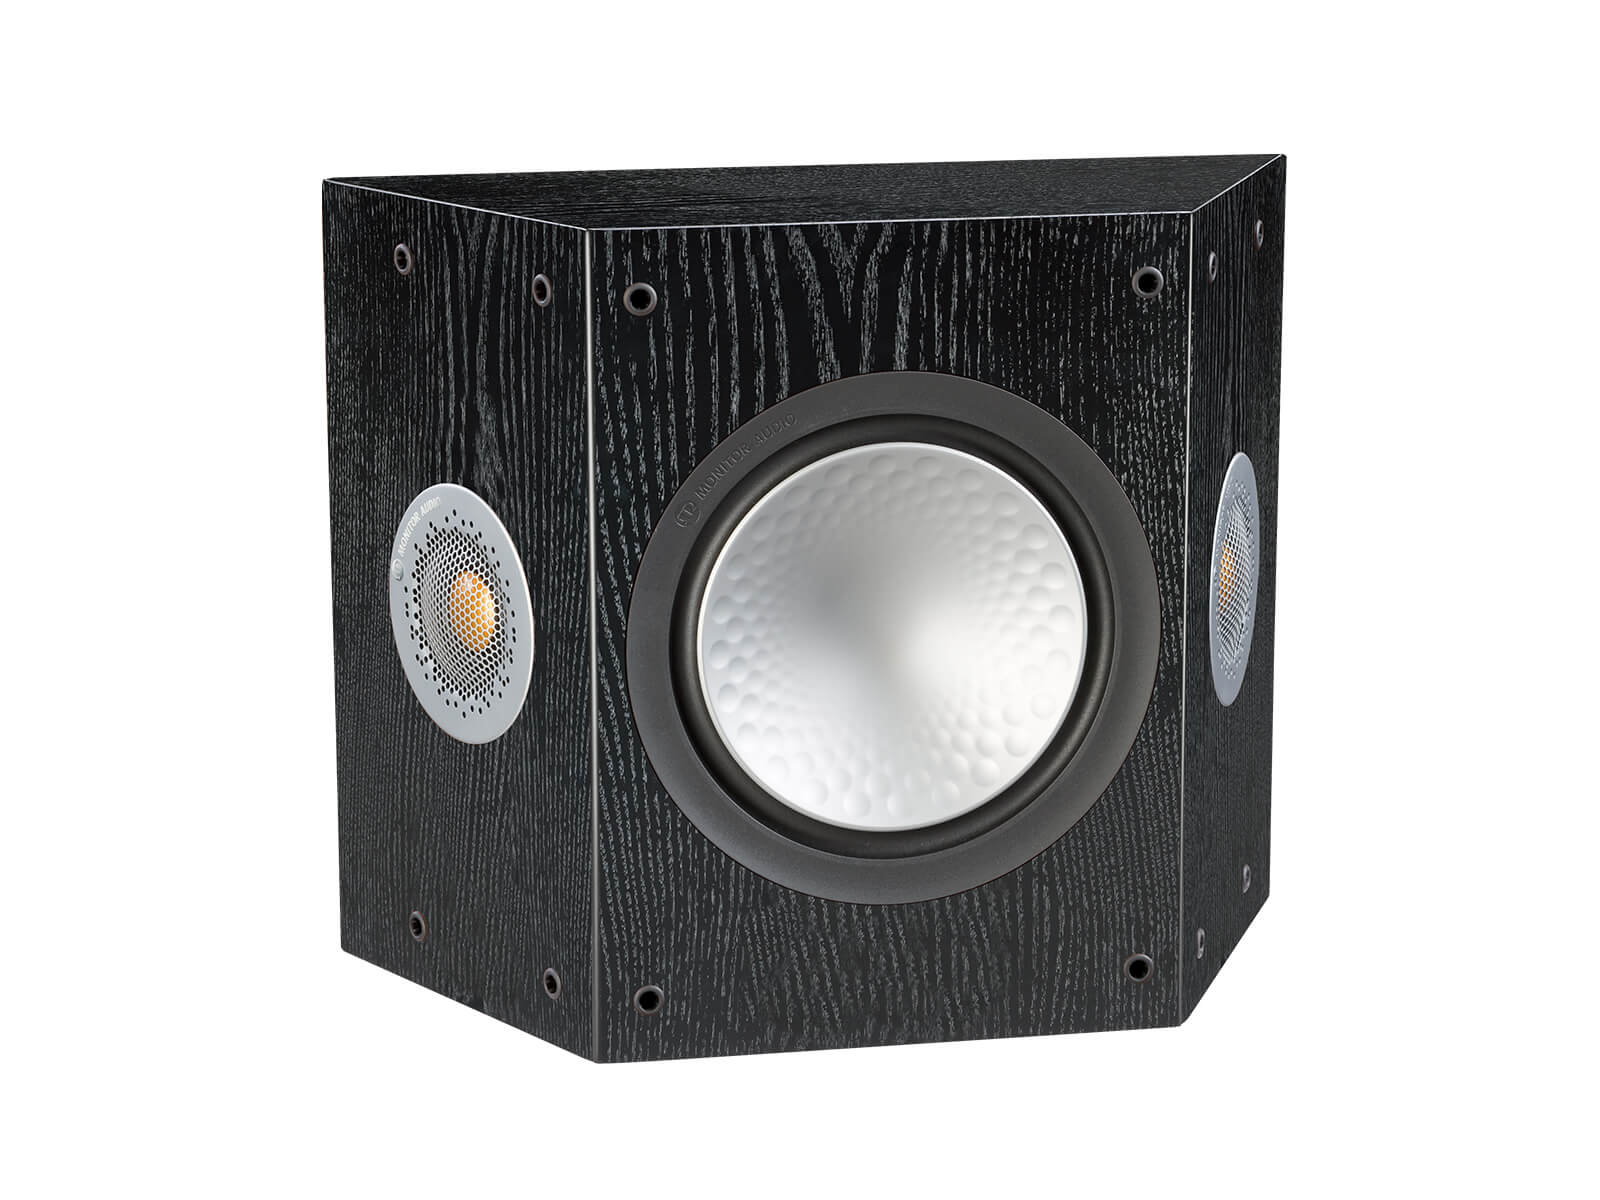 Silver FX, grille-less surround speakers, with a black oak finish.